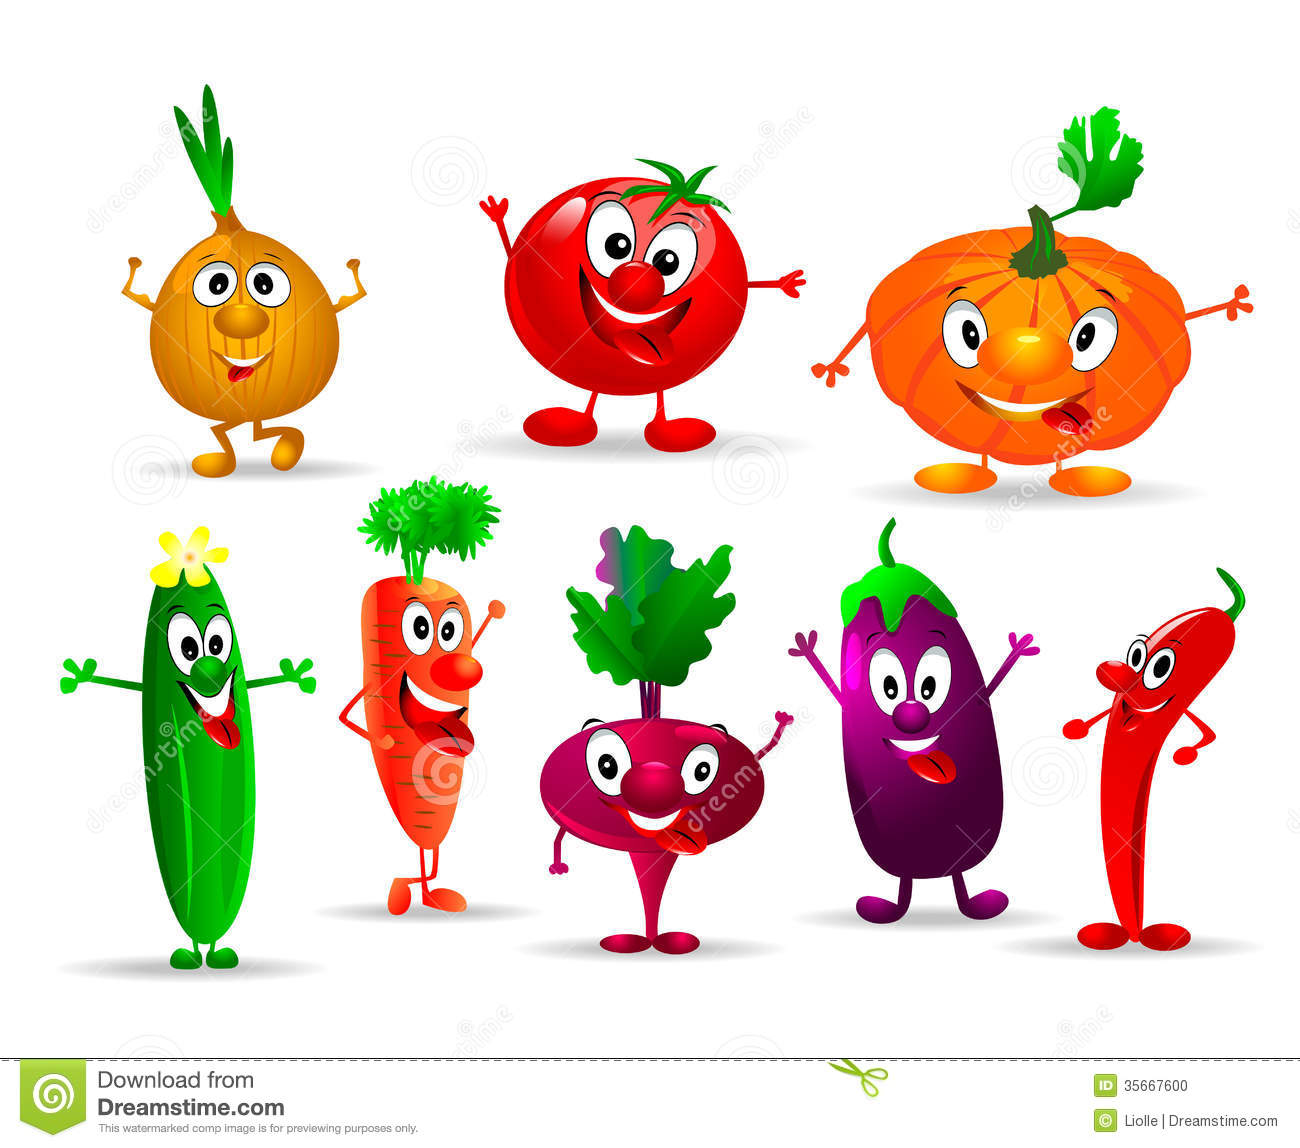 Funny Vegetables Stock Photo - Image: 35667600